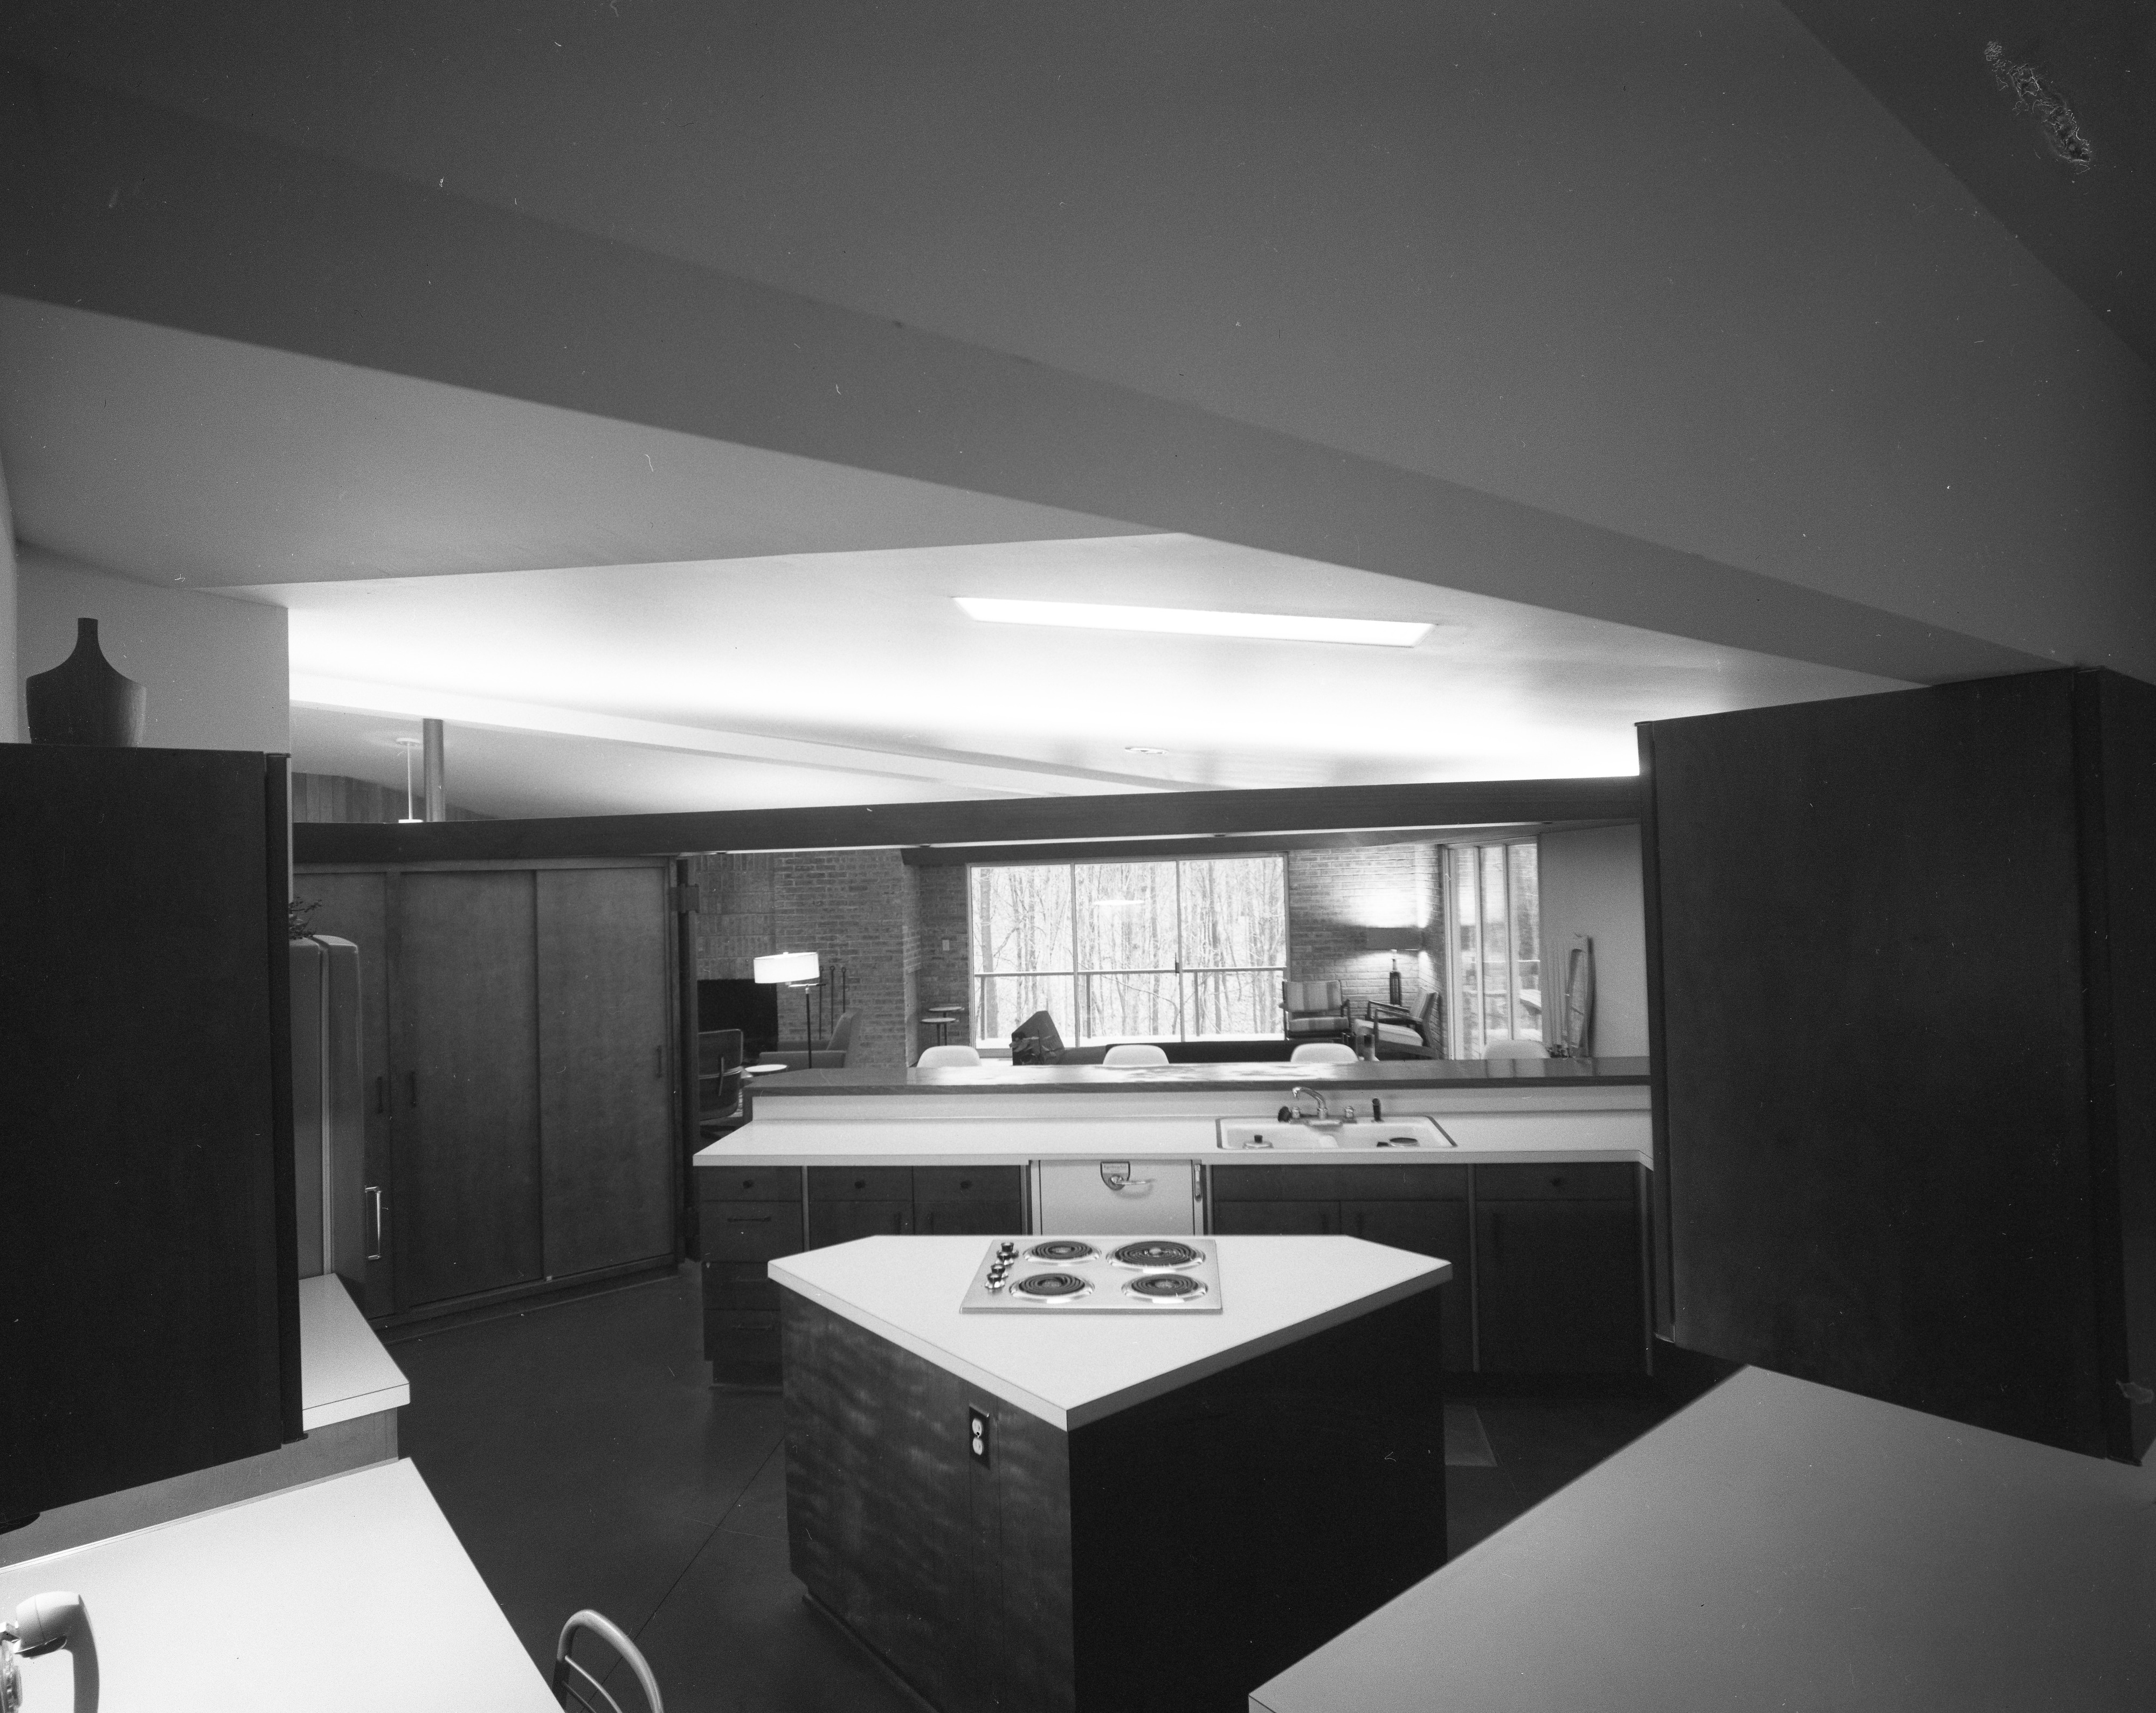 Kitchen in Holmes Mid-Century Modern Home On N Barton Dr., April 1961 image